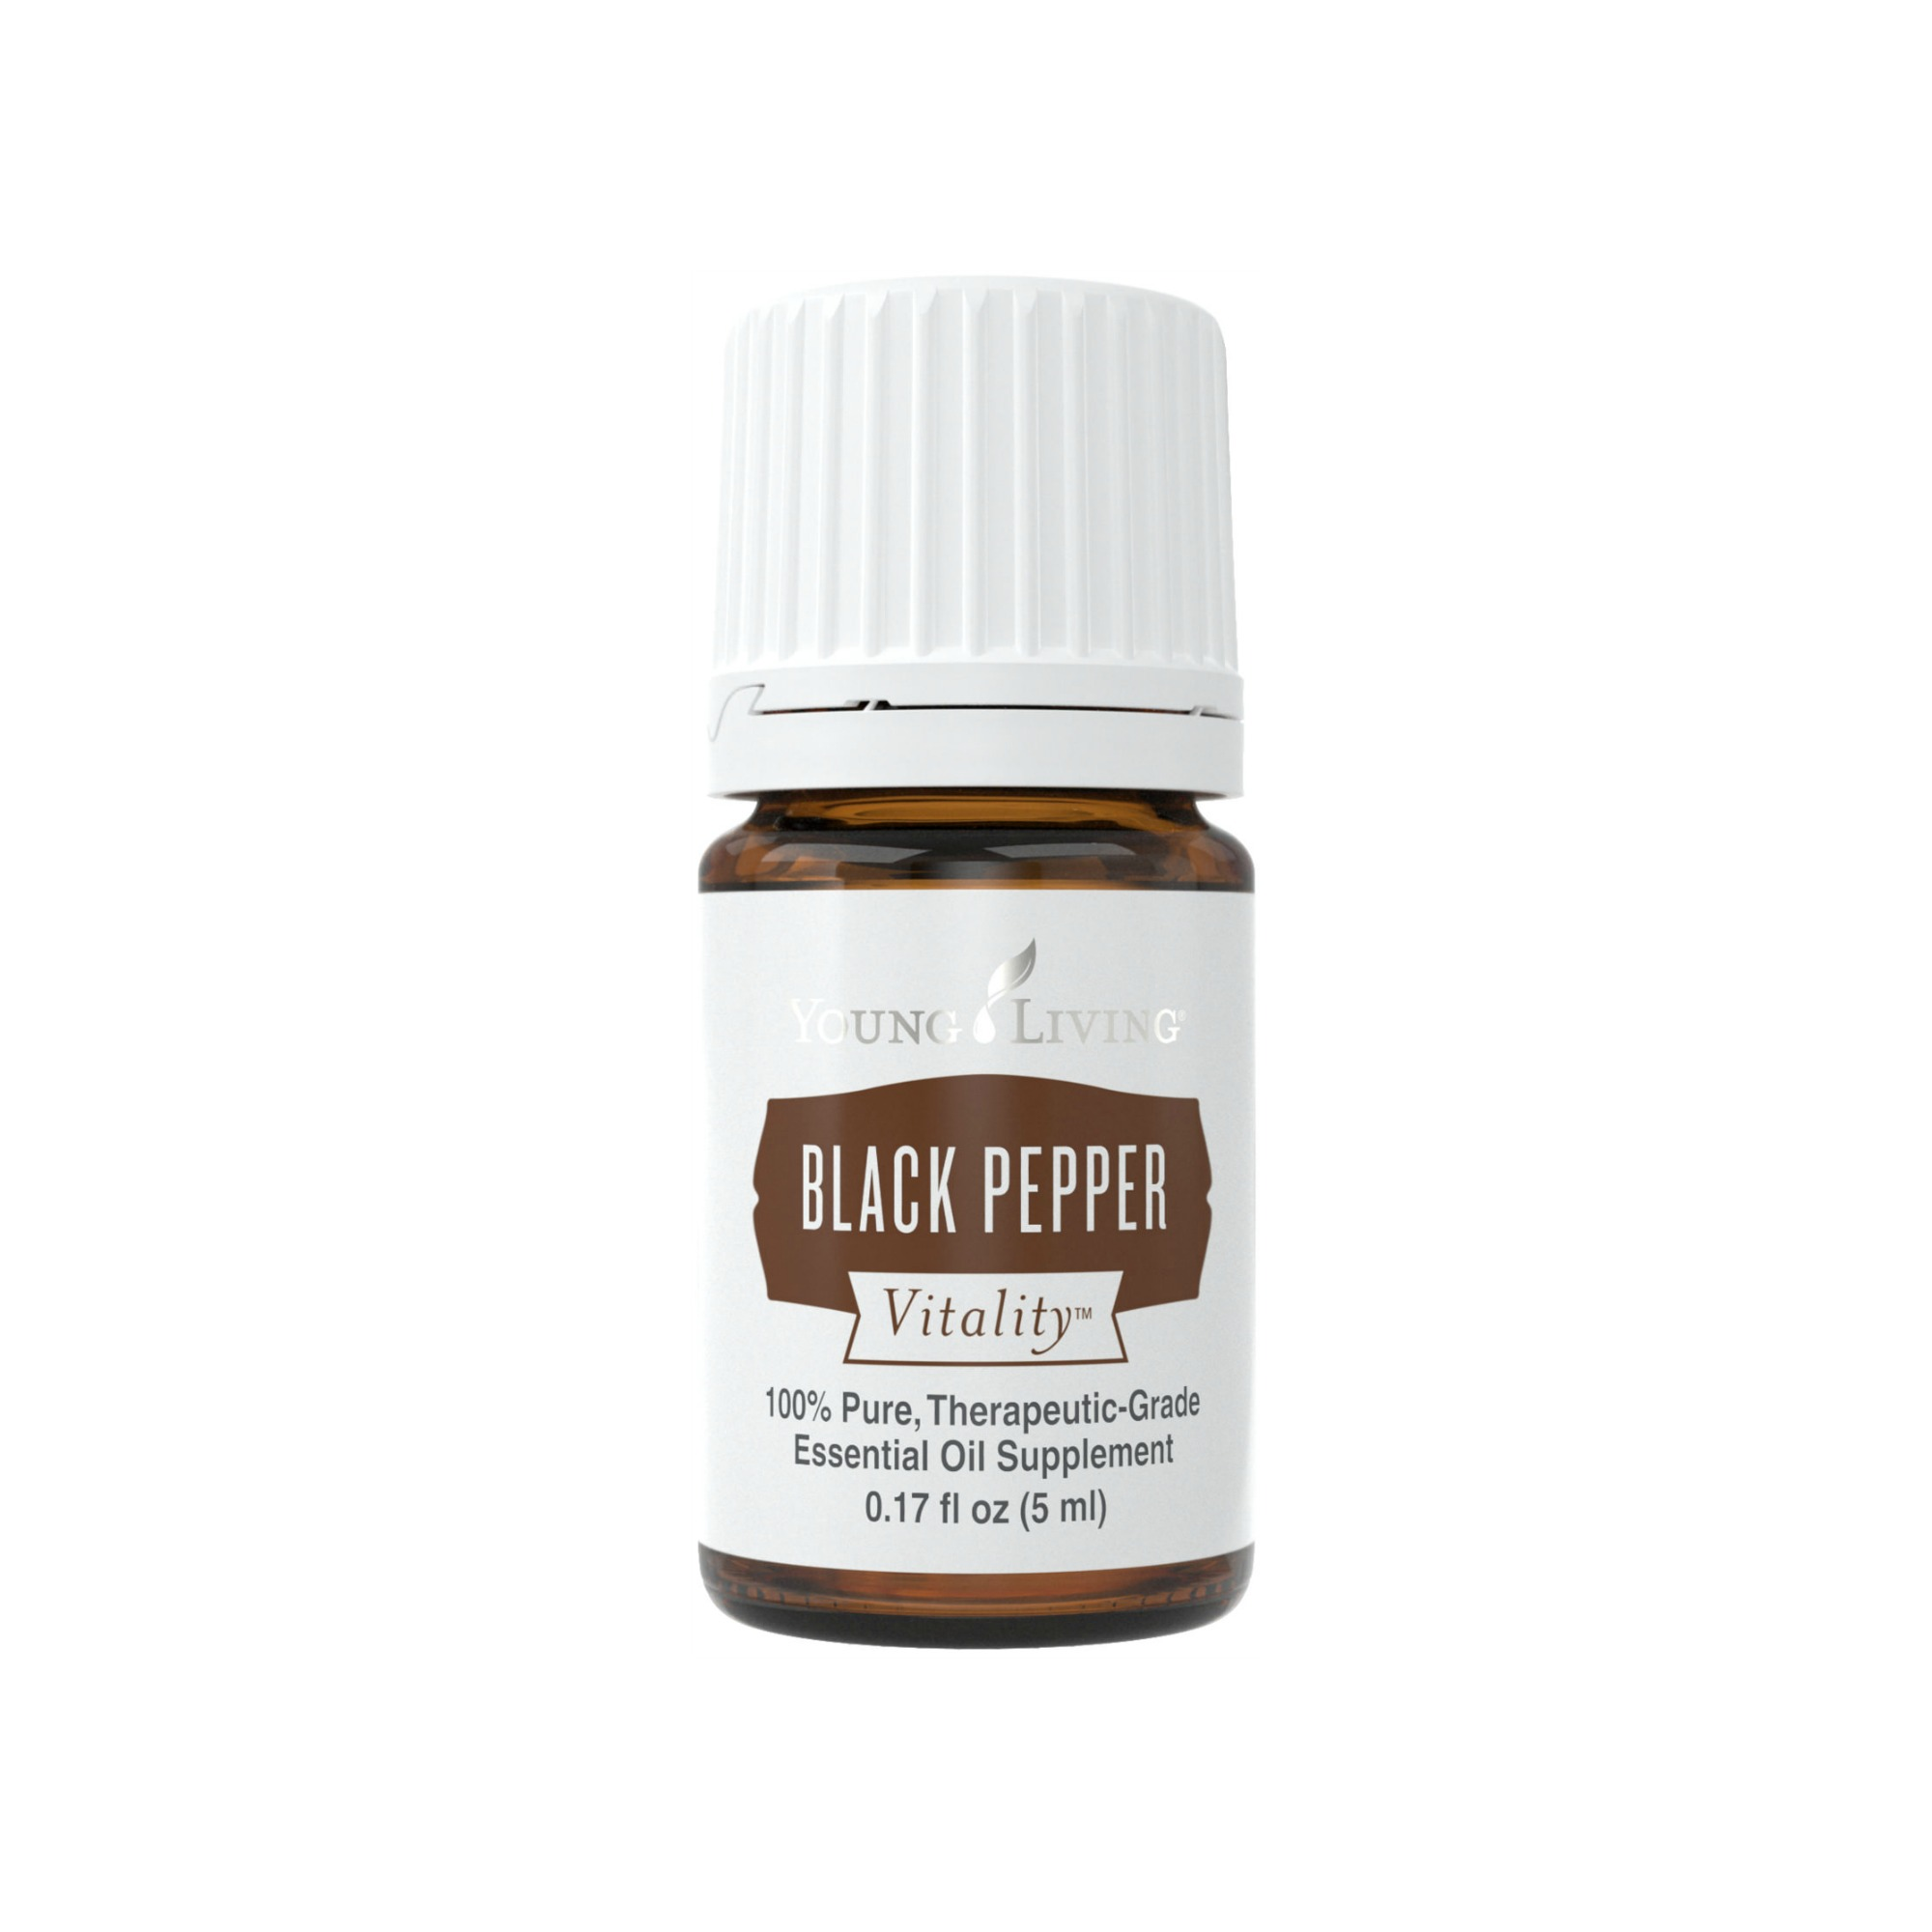 BLACK PEPPER VITALITY    Black Pepper is one of the most popular spices in the world. Its distinctive flavor makes it a common addition to many recipes, from appetizers to entrees. Use Young Living's Black Pepper Vitality essential oil to spice up your favorite soup, rub, or marinade recipes. Black Pepper Vitality oil can replace ground black pepper.   Click here   to learn more about this product.